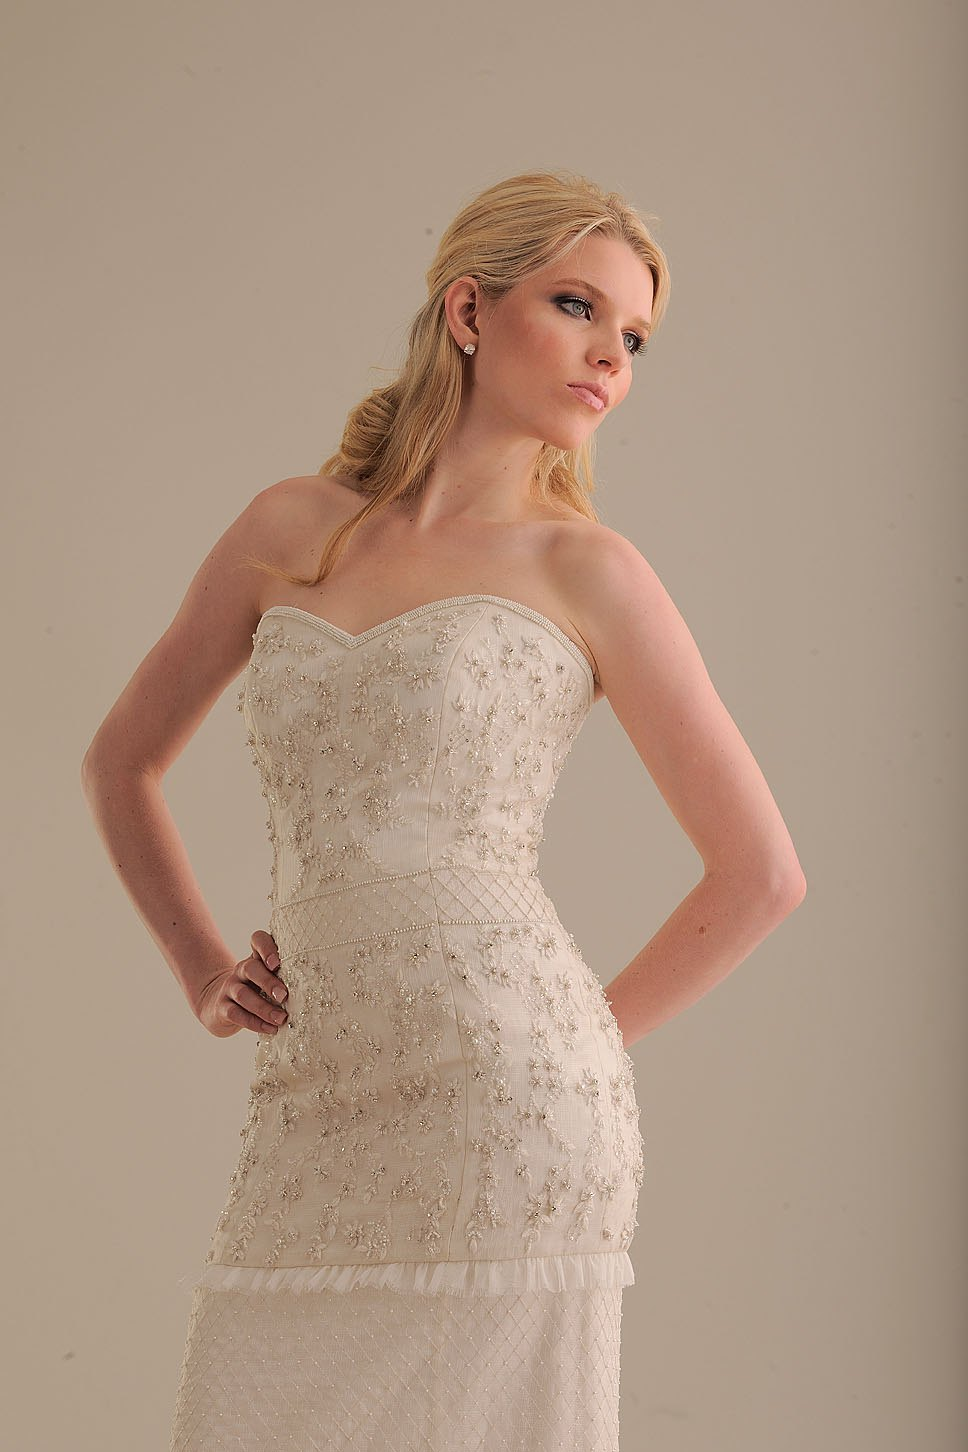 No-ordinary-bride-wedding-dress-845-3.original